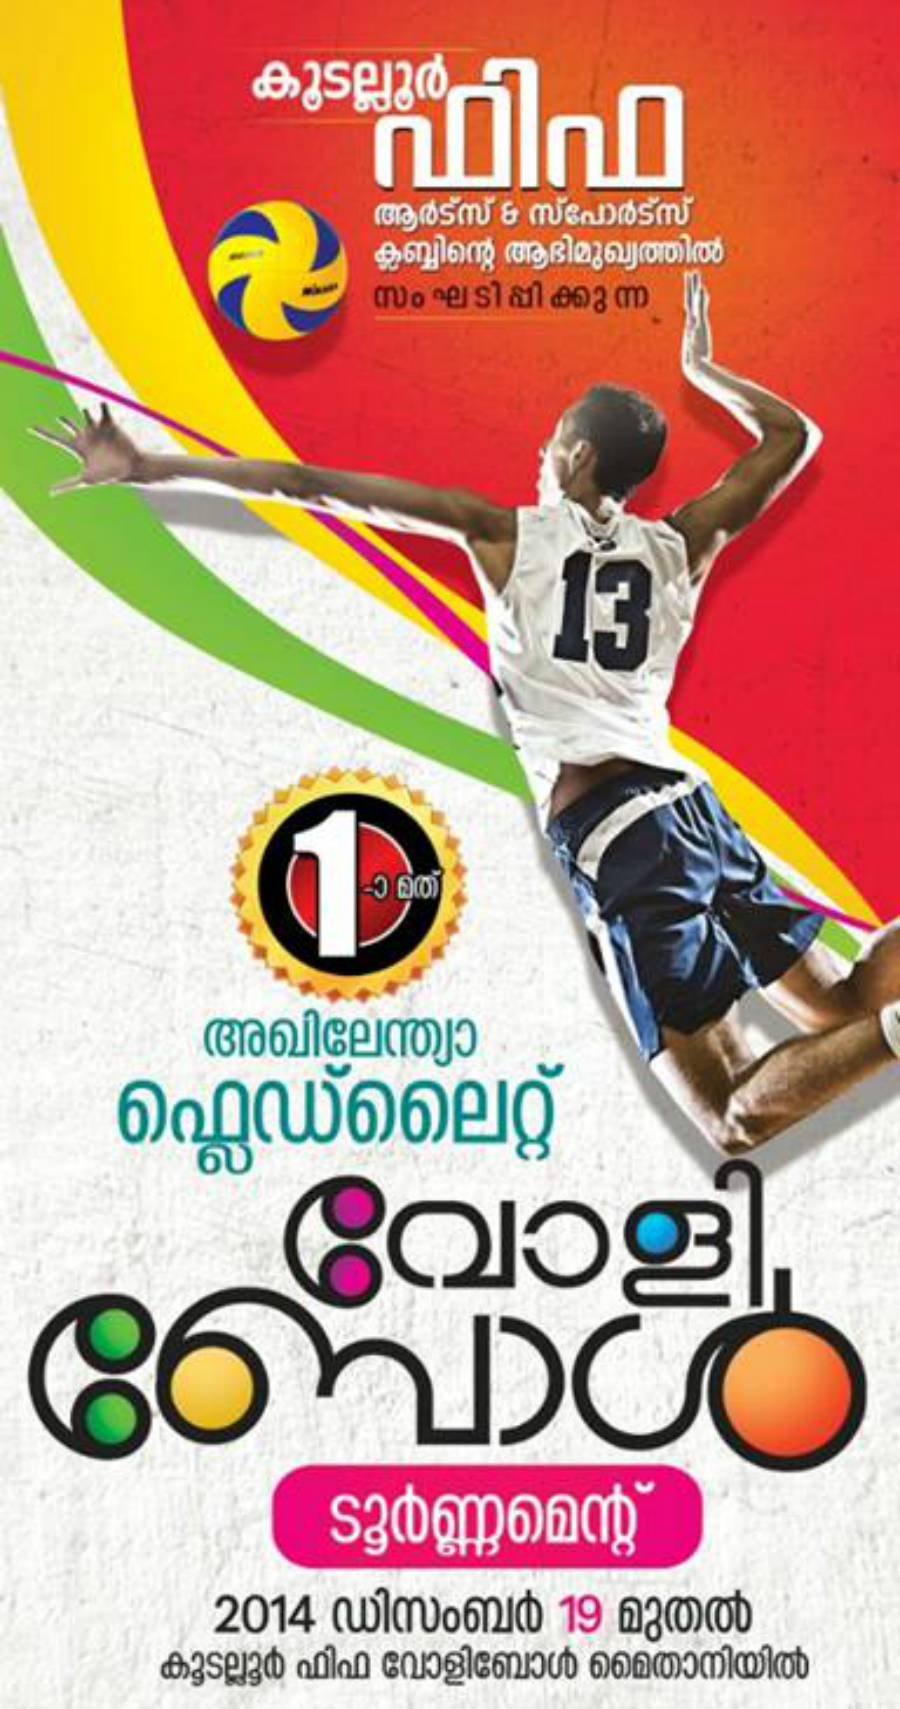 FIFA Kudallur - Volley Ball